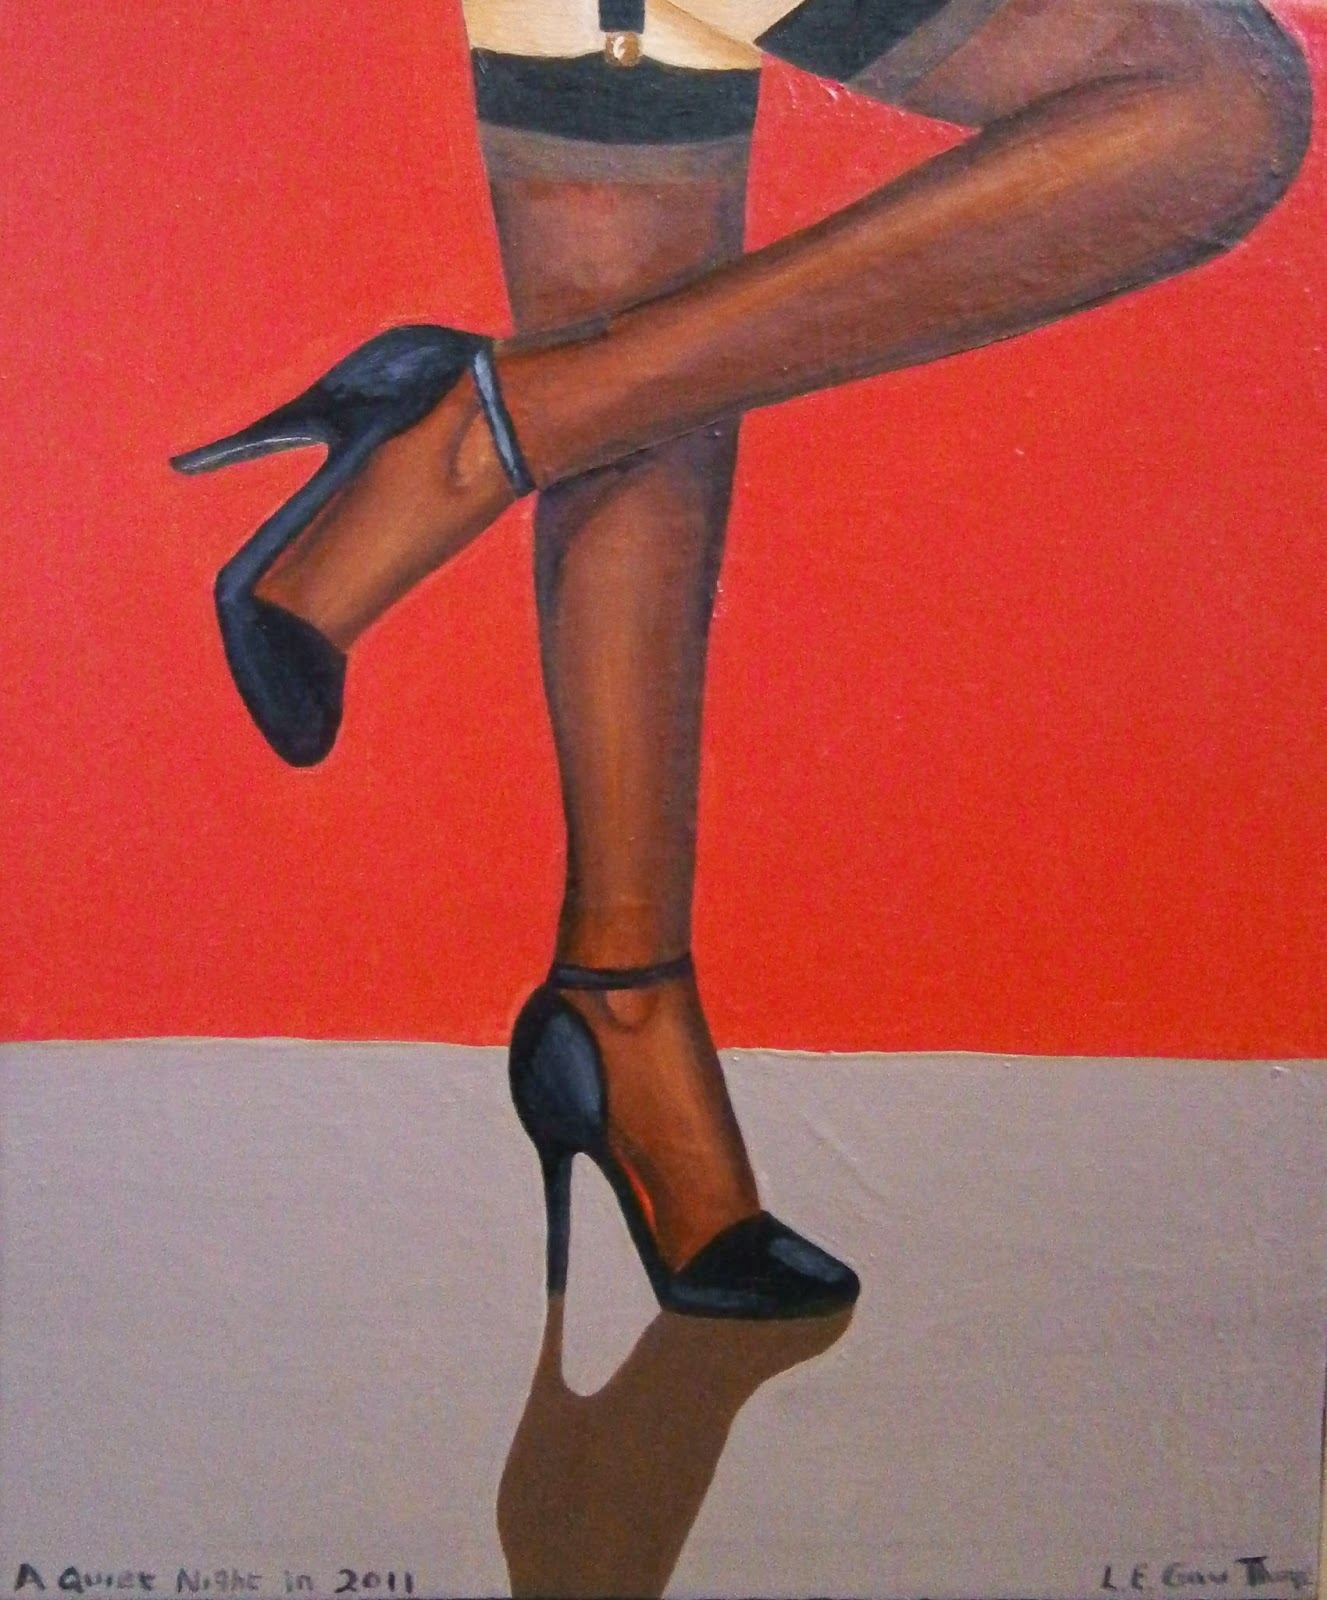 A woman wearing dark stocking and black heels